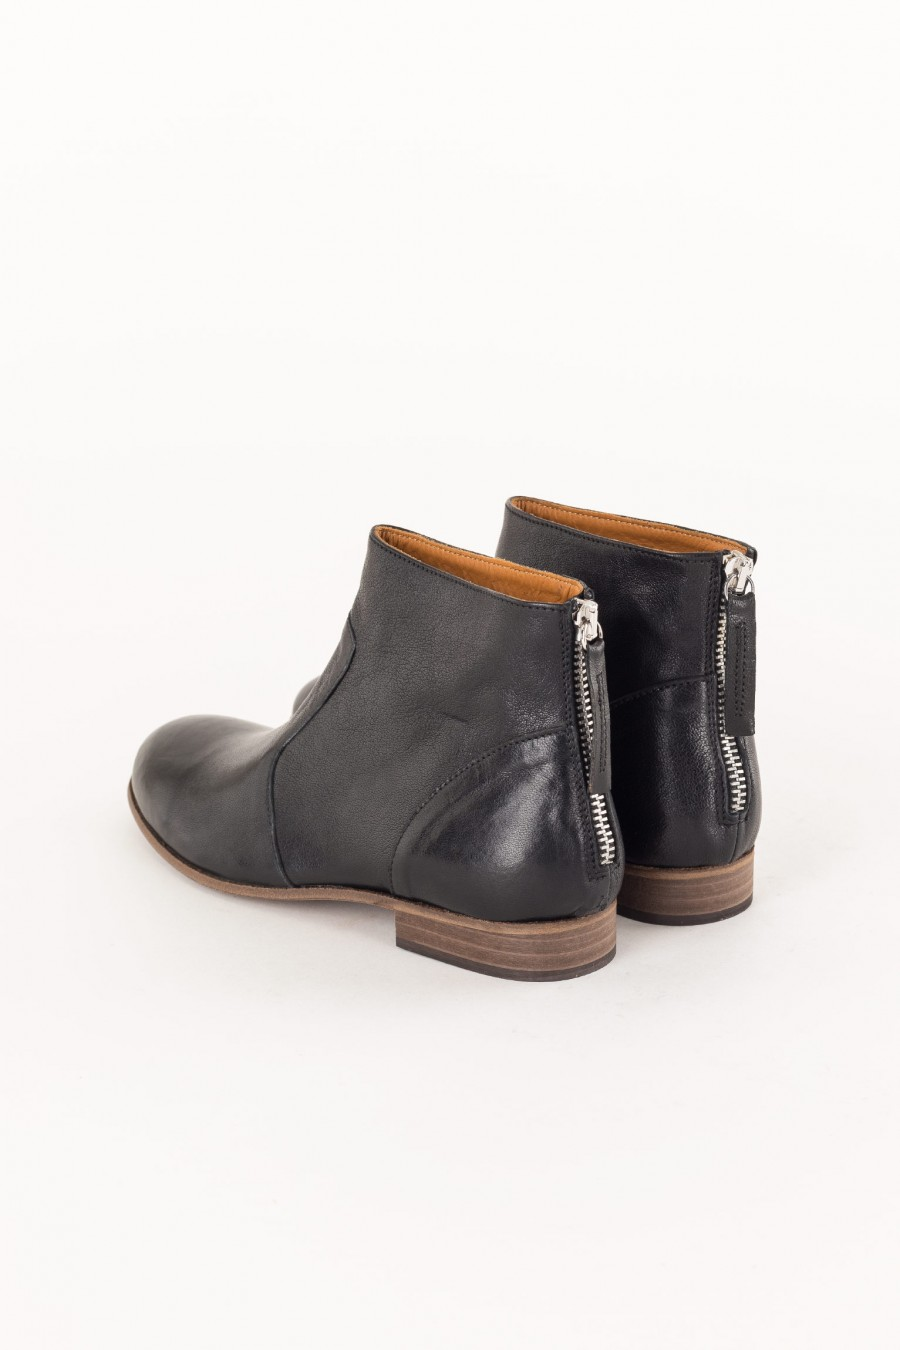 black leather ankle boot without heel